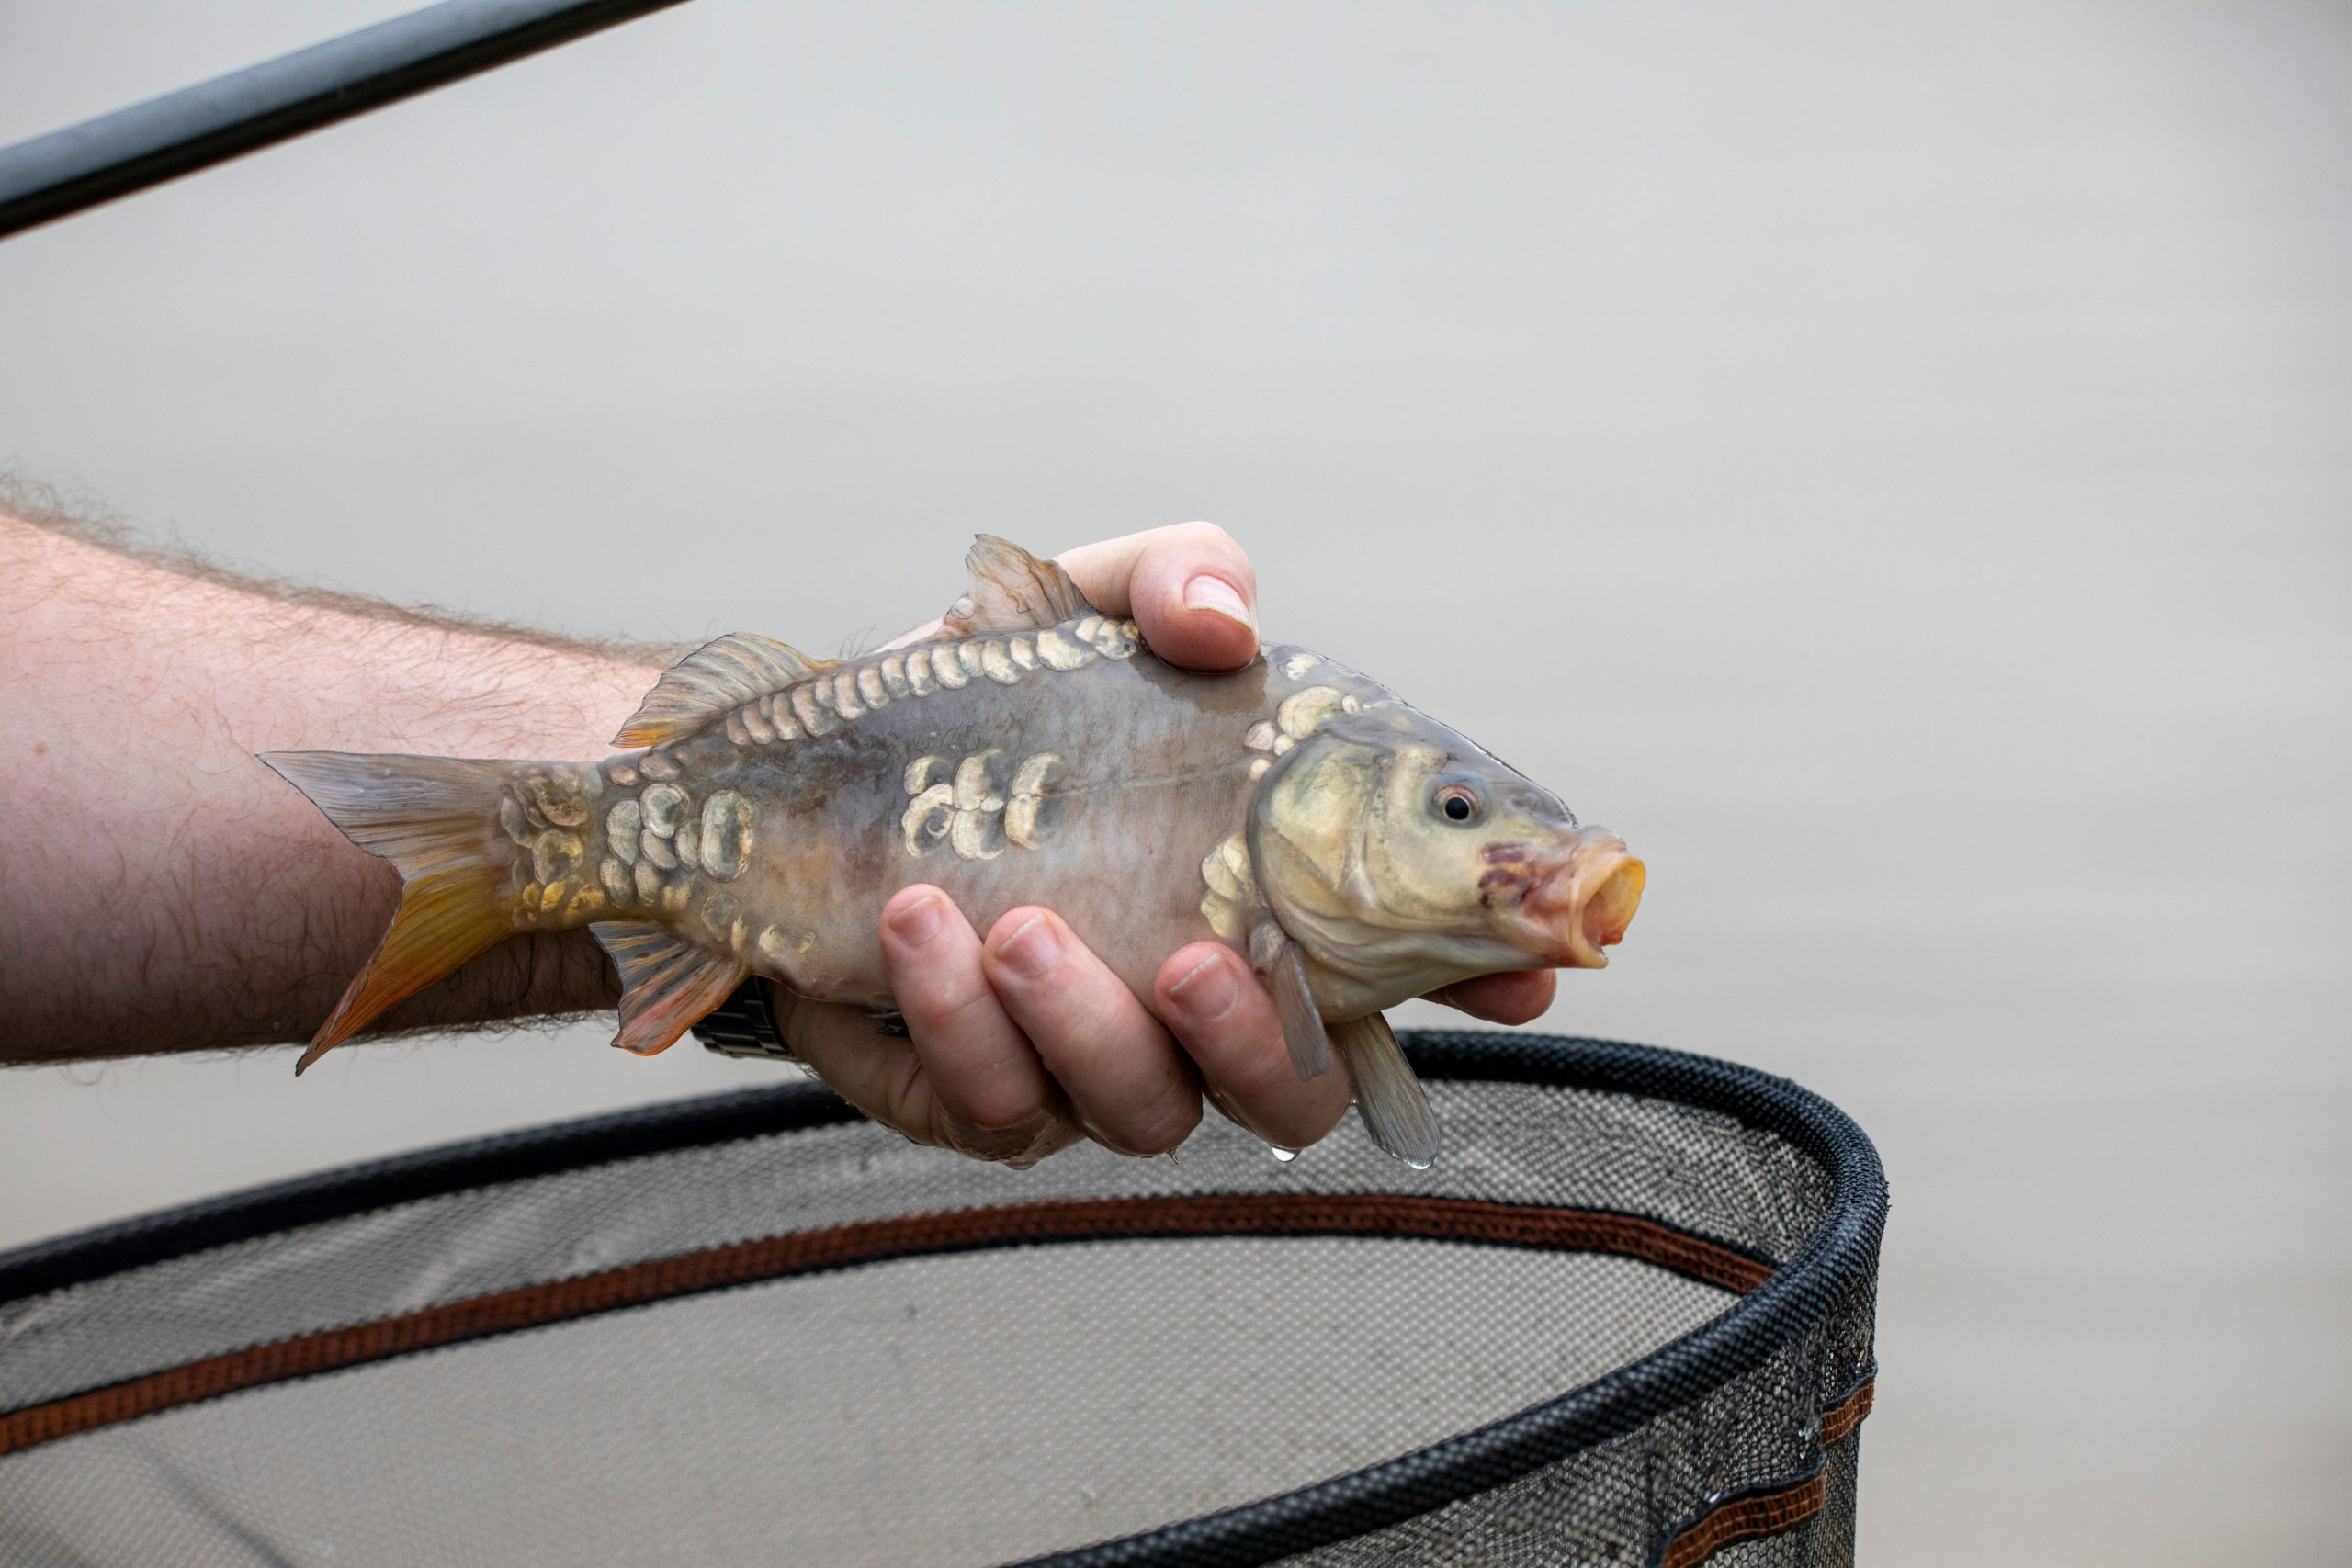 Baby mirror carp being held by an angler in one hand.